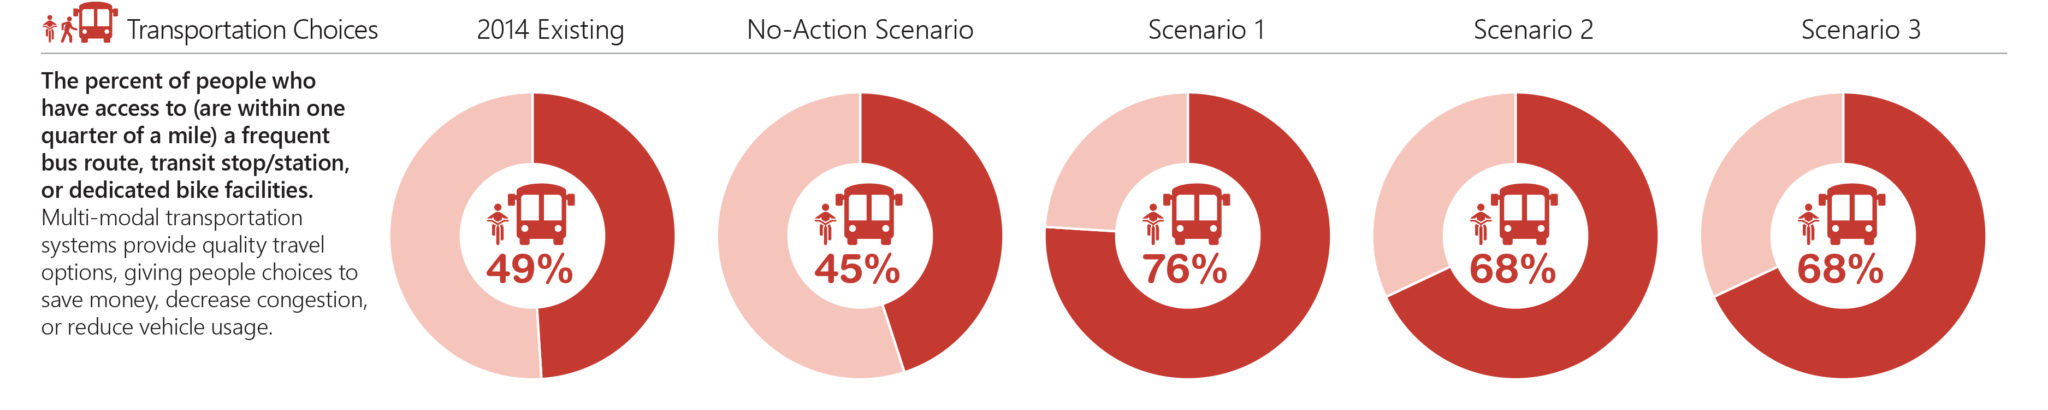 Transportation choices performance measure.